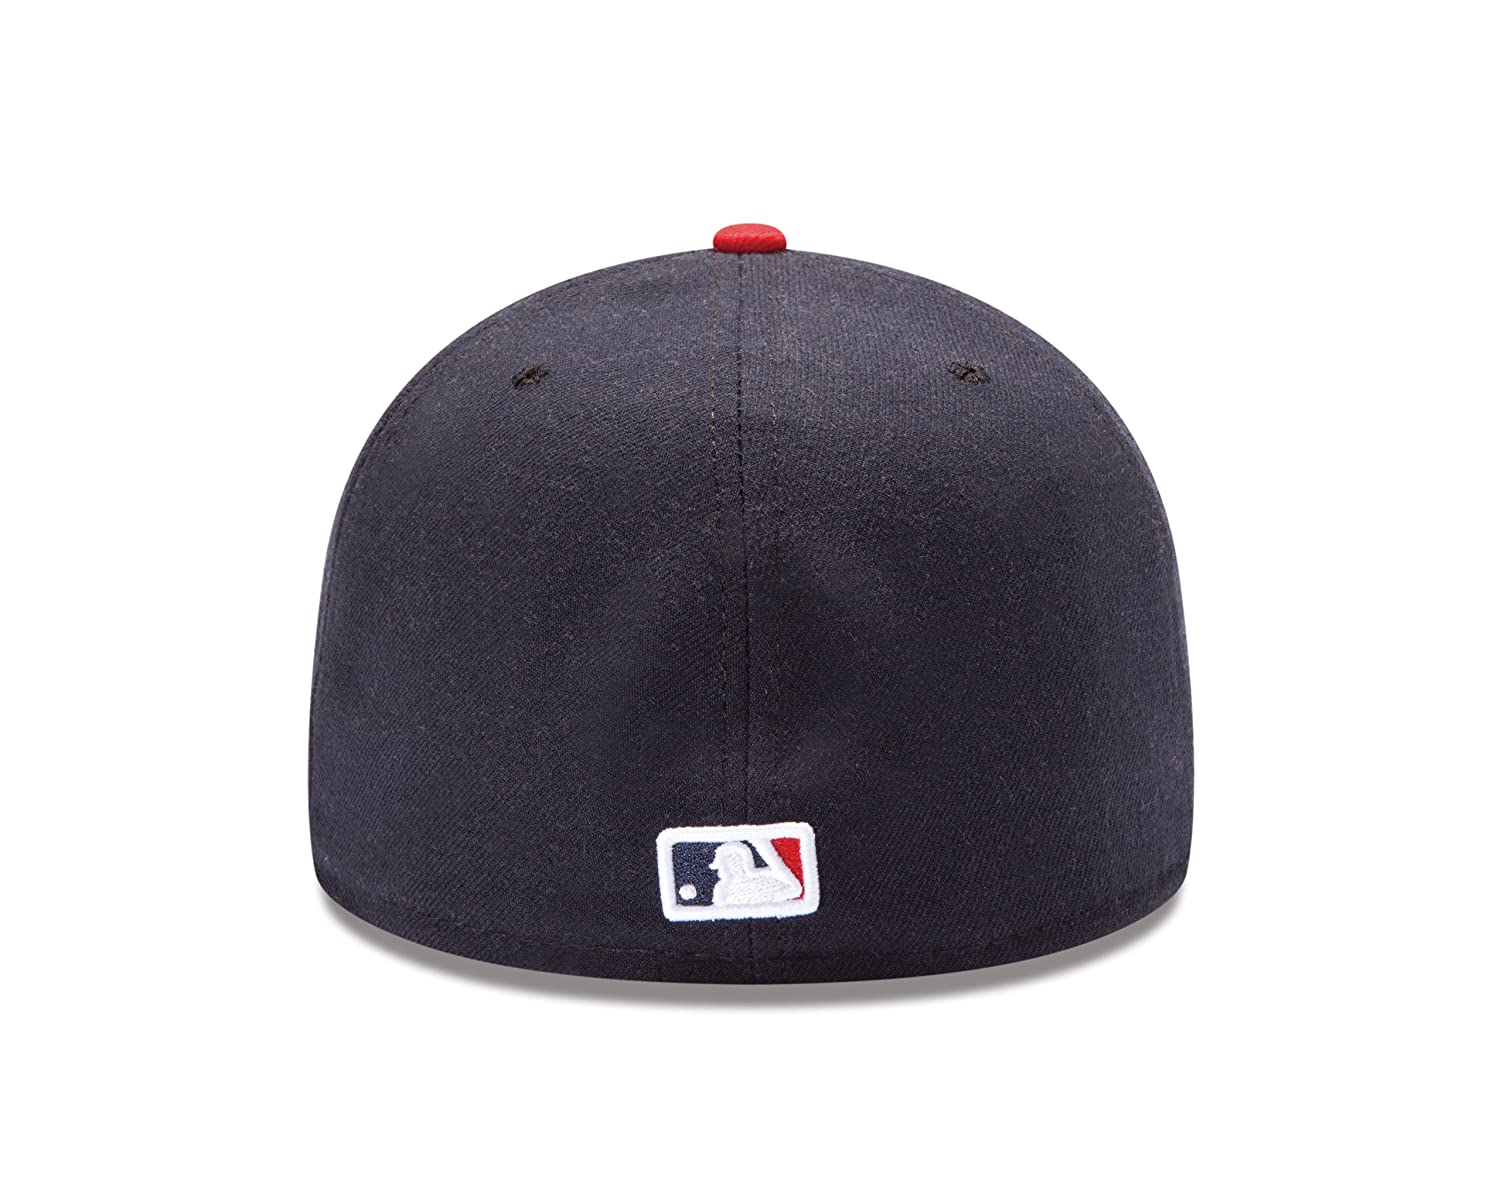 separation shoes 310be 06ccc Amazon.com  New Era 59FIFTY St. Louis Cardinals Team Alternate 2 Baseball Hat  Navy Red  Clothing